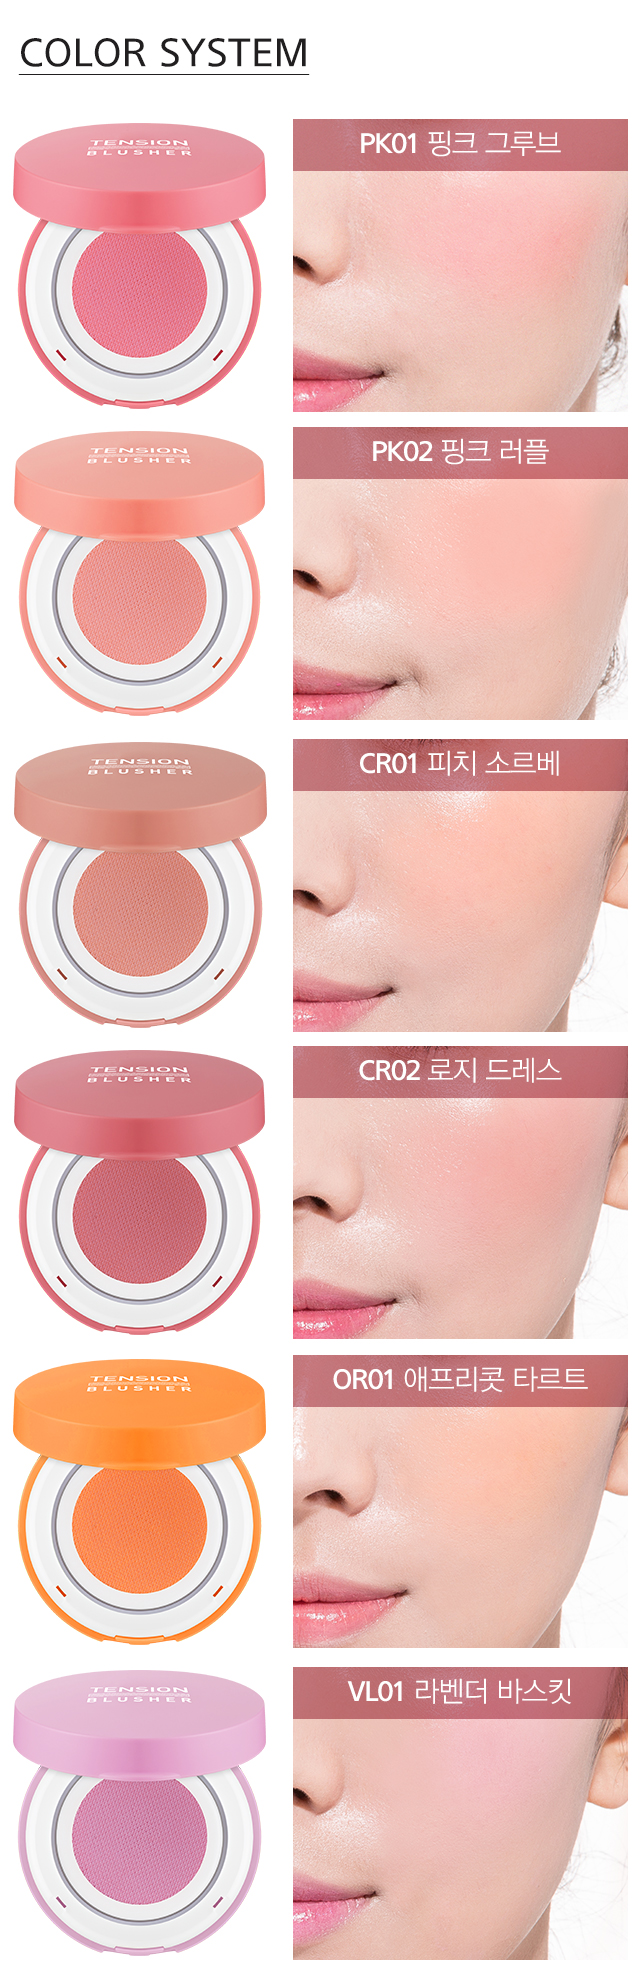 MISSHA_TENSION_BLUSHER_CR01_03.jpg